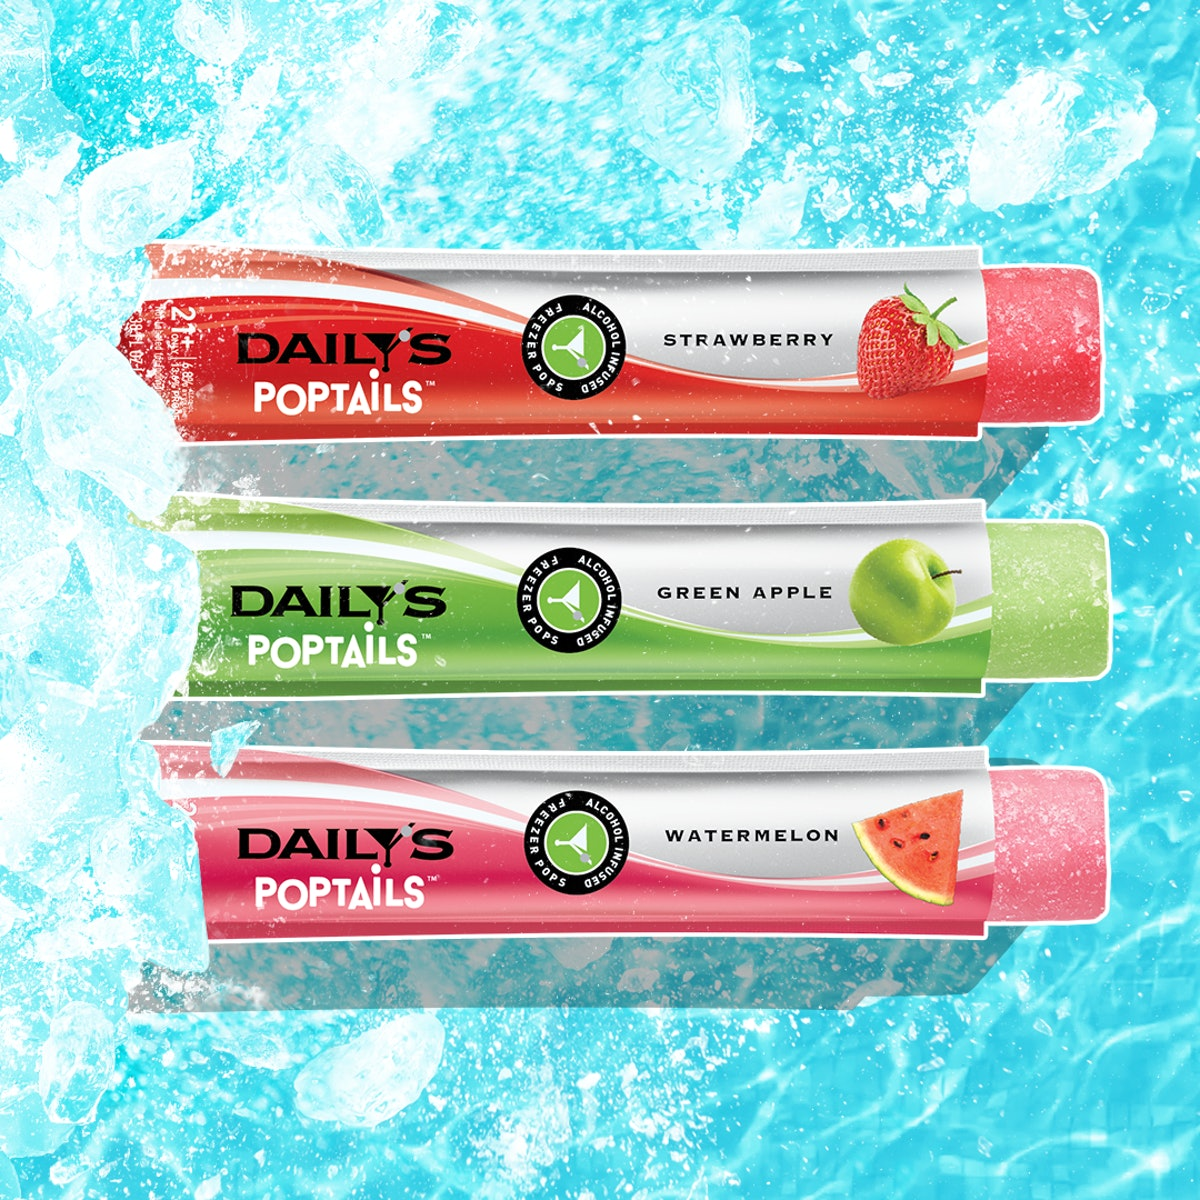 These Daily's Poptails Frozen Alcoholic Pops Feature flavors like green apple.